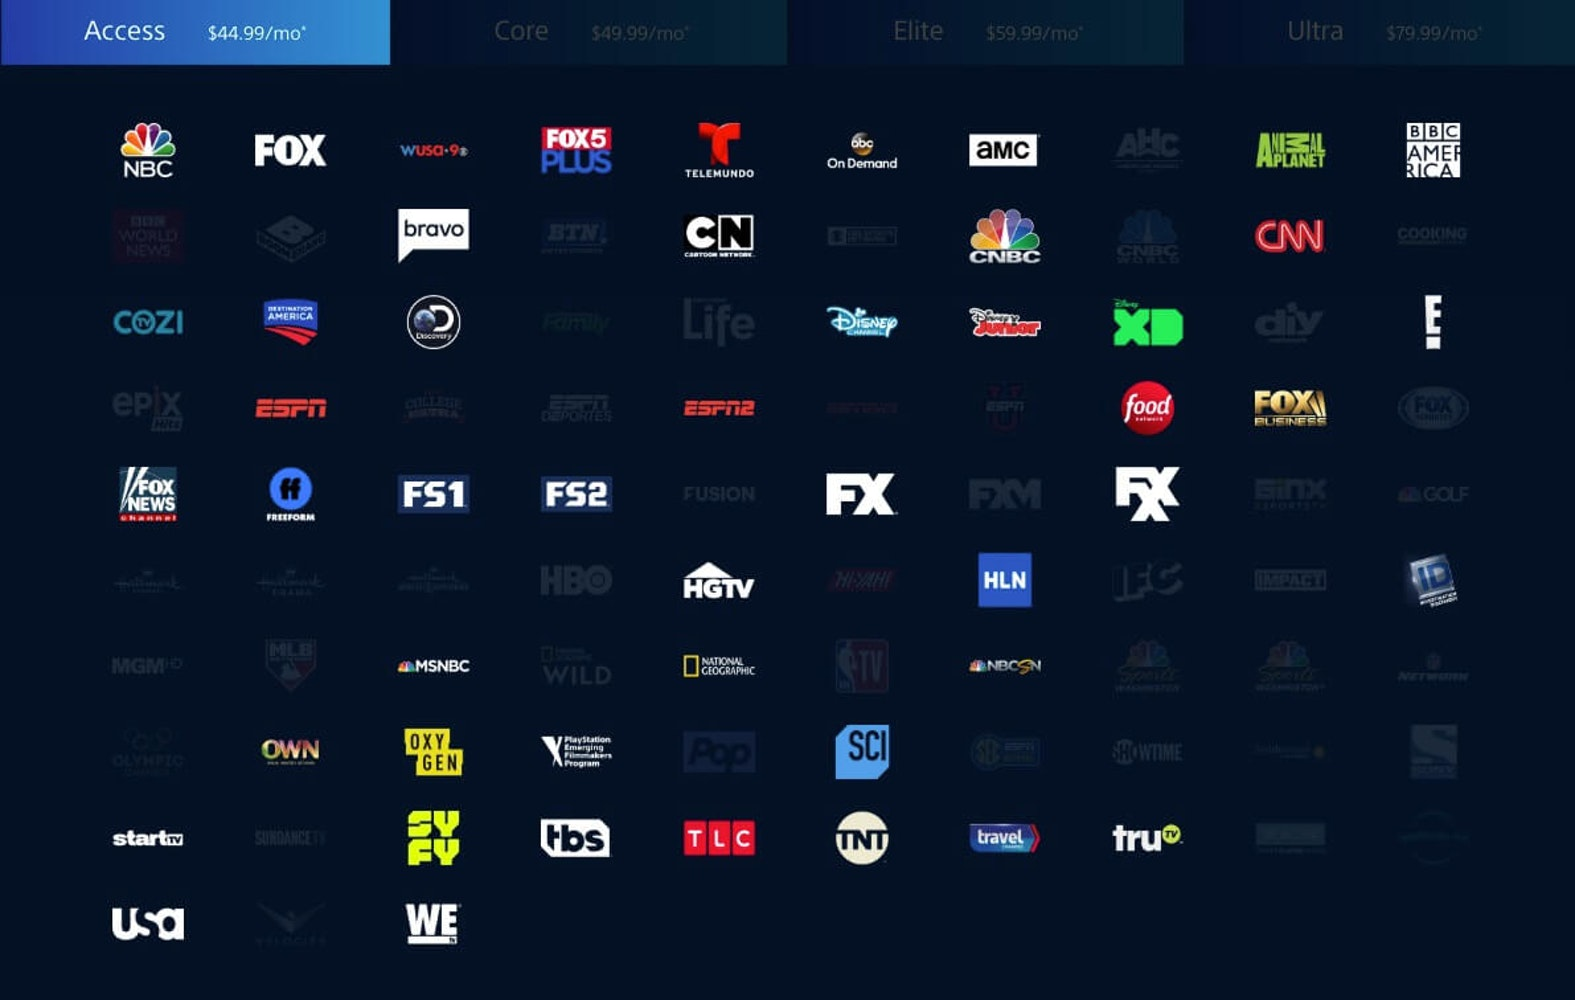 watch Real Madrid vs psg live stream on Playstation Vue